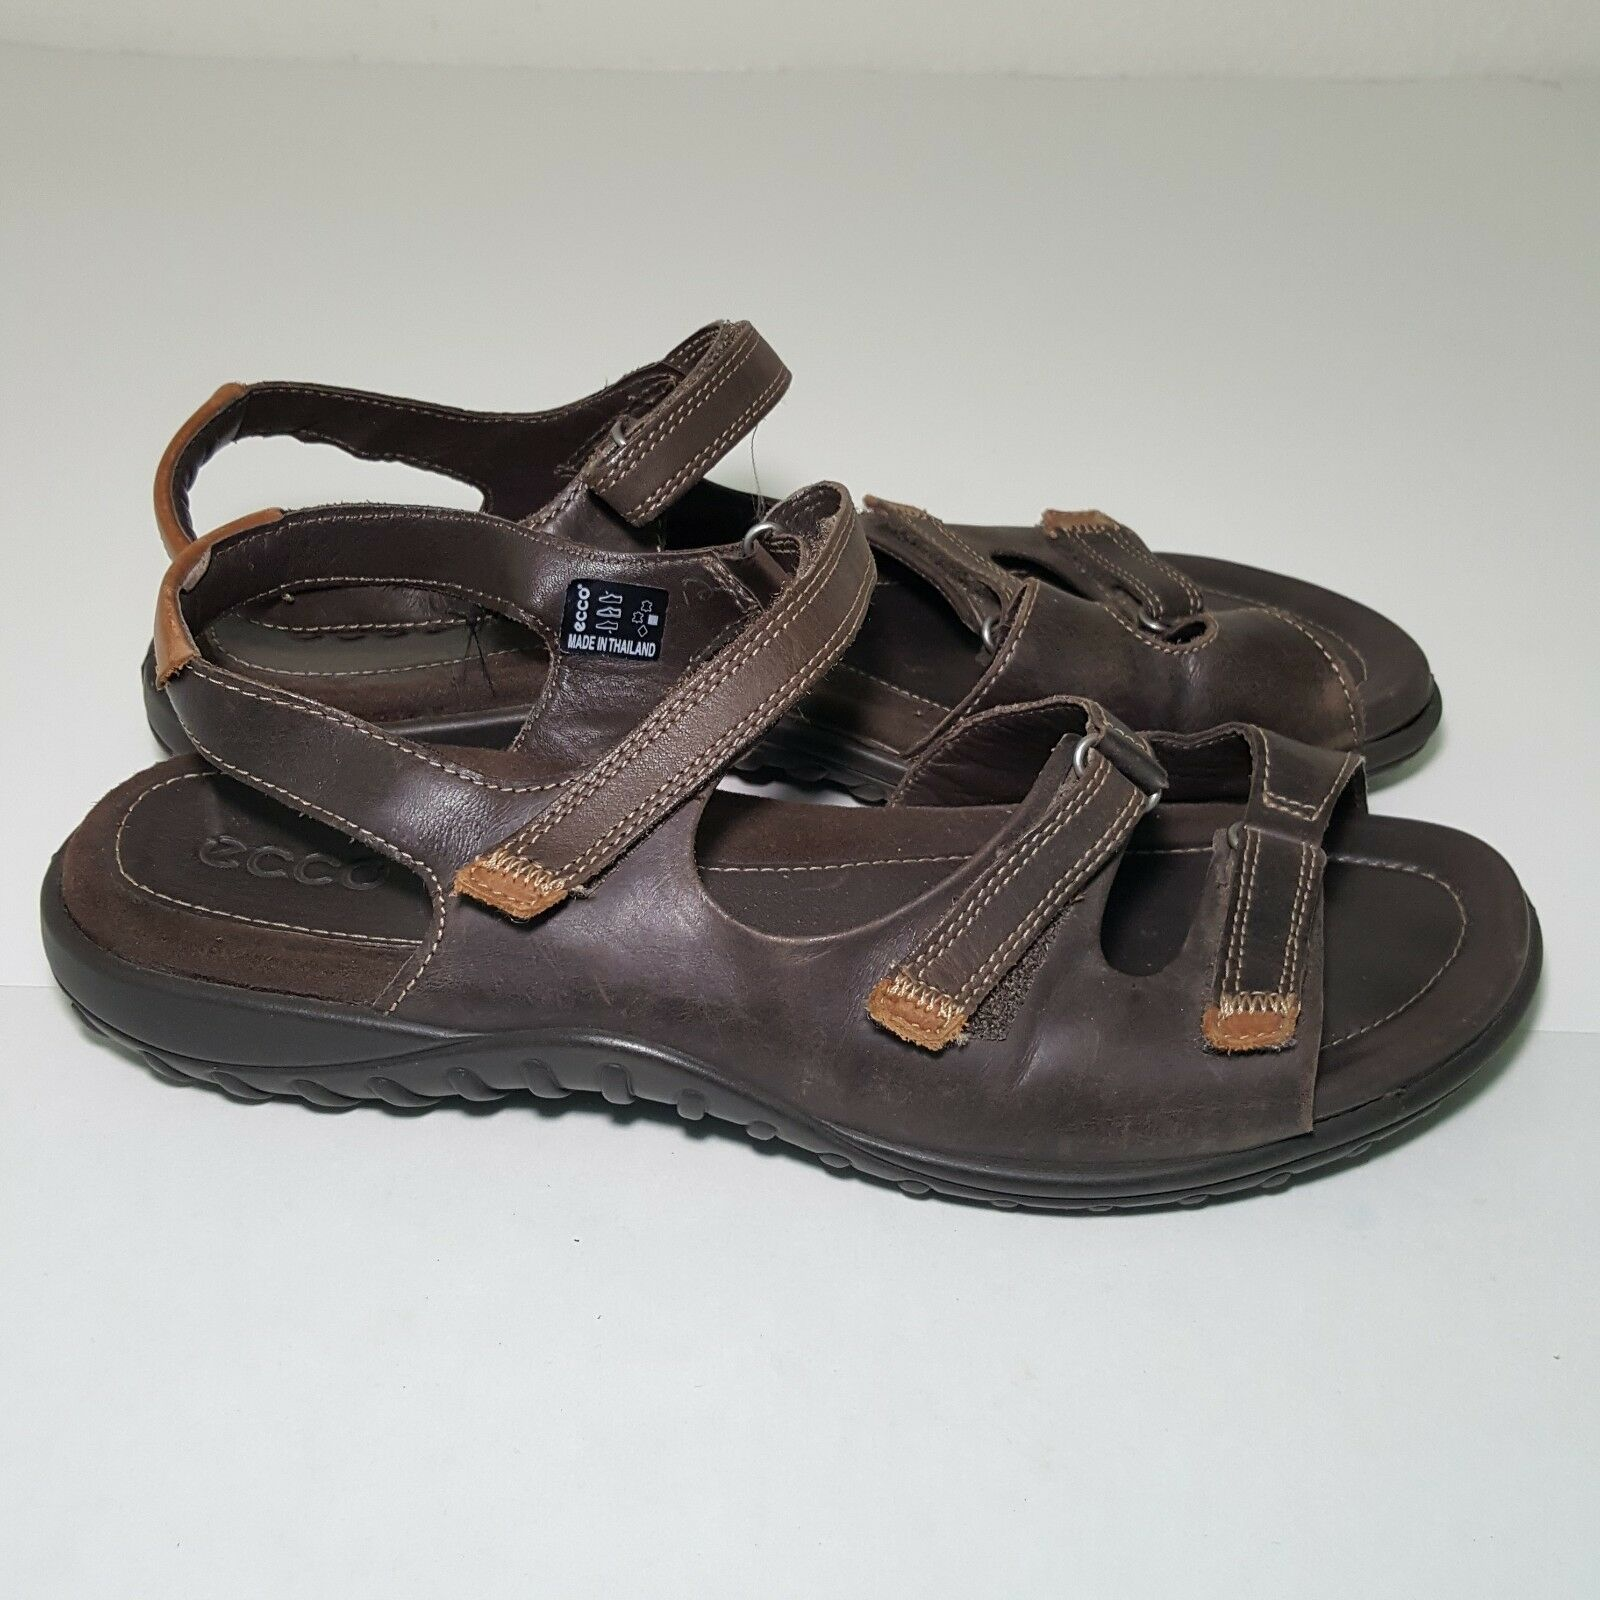 Men's/Women's Ecco womens sandals size 41 High grade practical New in stock Very practical grade 9440f6